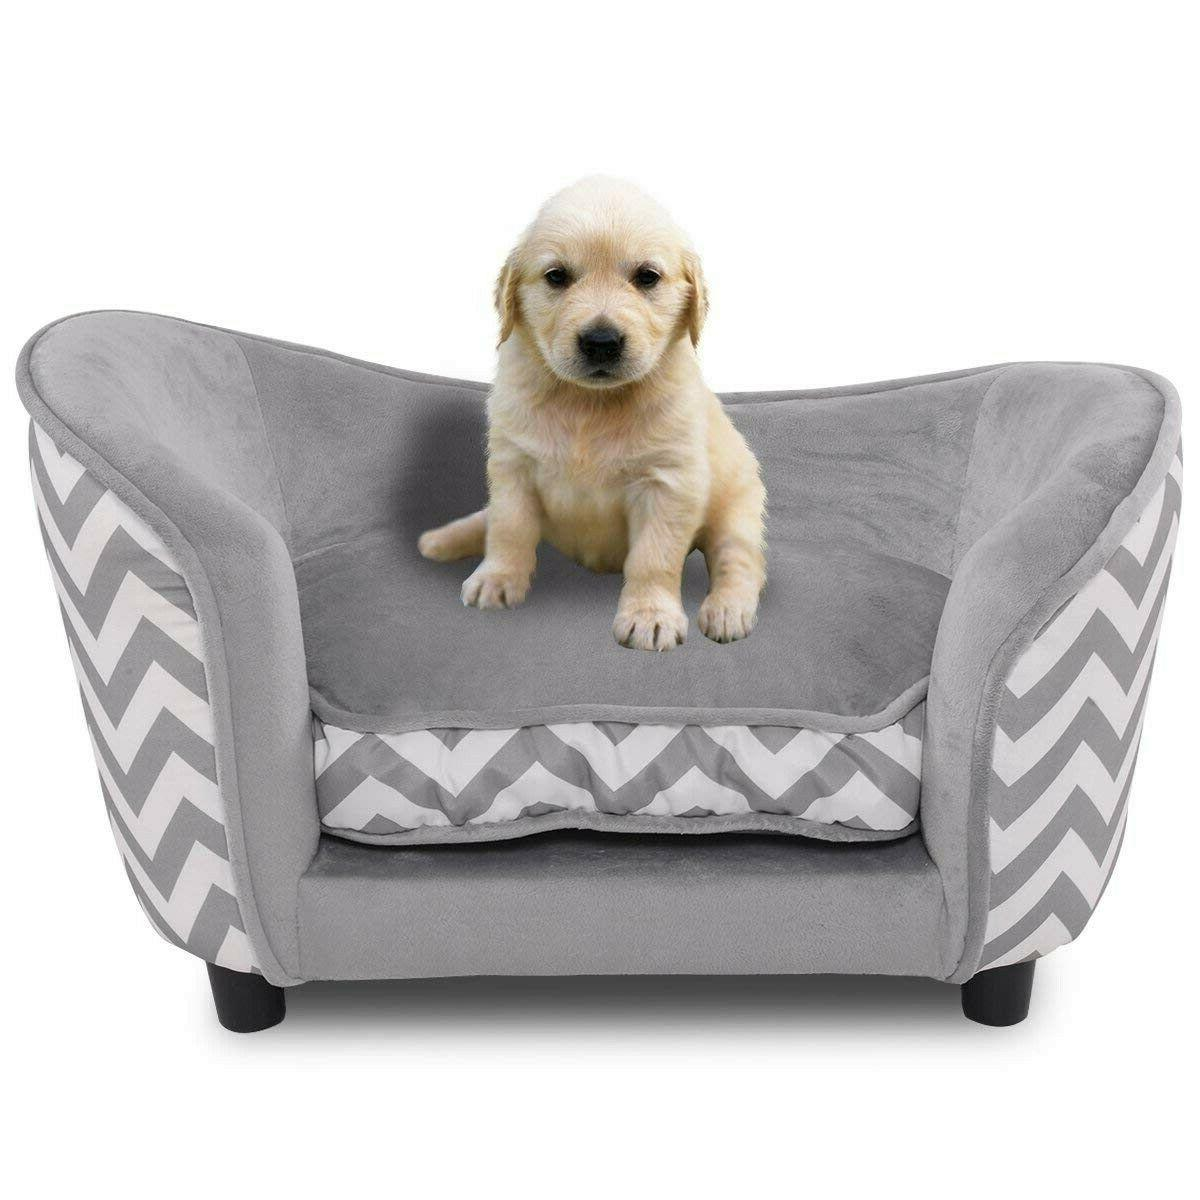 Small Dog Bed Beds Dogs Sofa Sleeping Soft Gray New